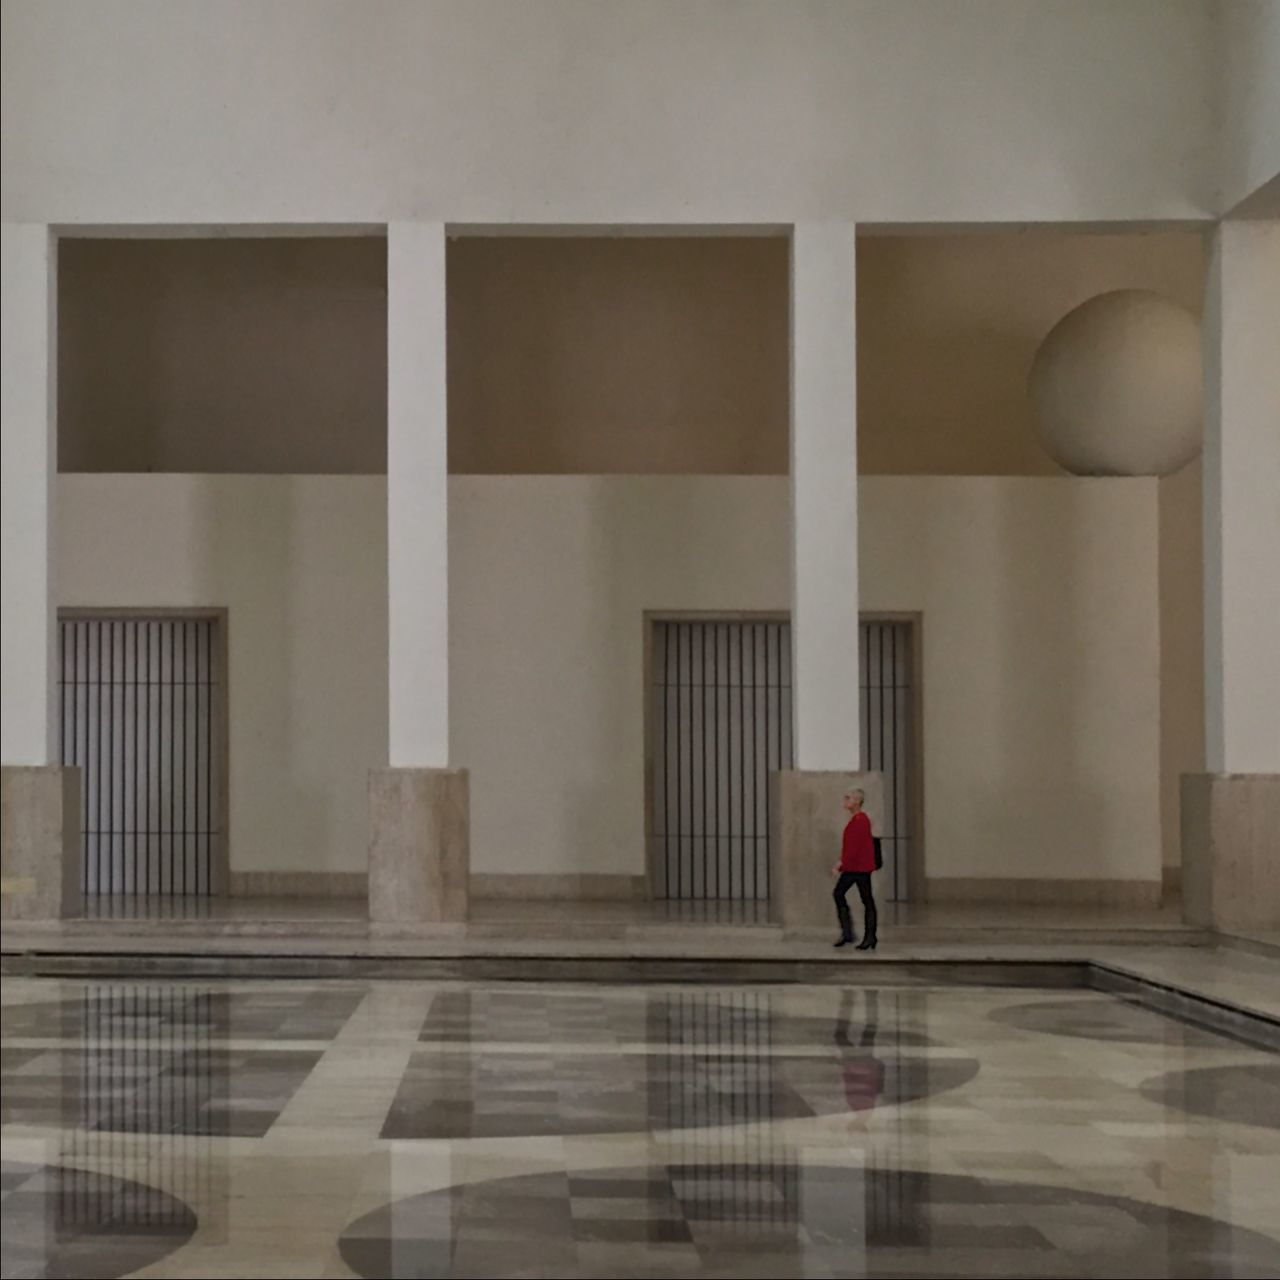 169 / 366 Arches Architecture Building Built Structure Columns Corridor Frames Indoors  Leisure Activity Person Reflection Reflections In The Water Walking Wall - Building Feature Woman Rule Of Thirds Ruleofthirds Marco Museo Marco Museomarco Legorreta Arquitectosmexicanos Fine Art Photography